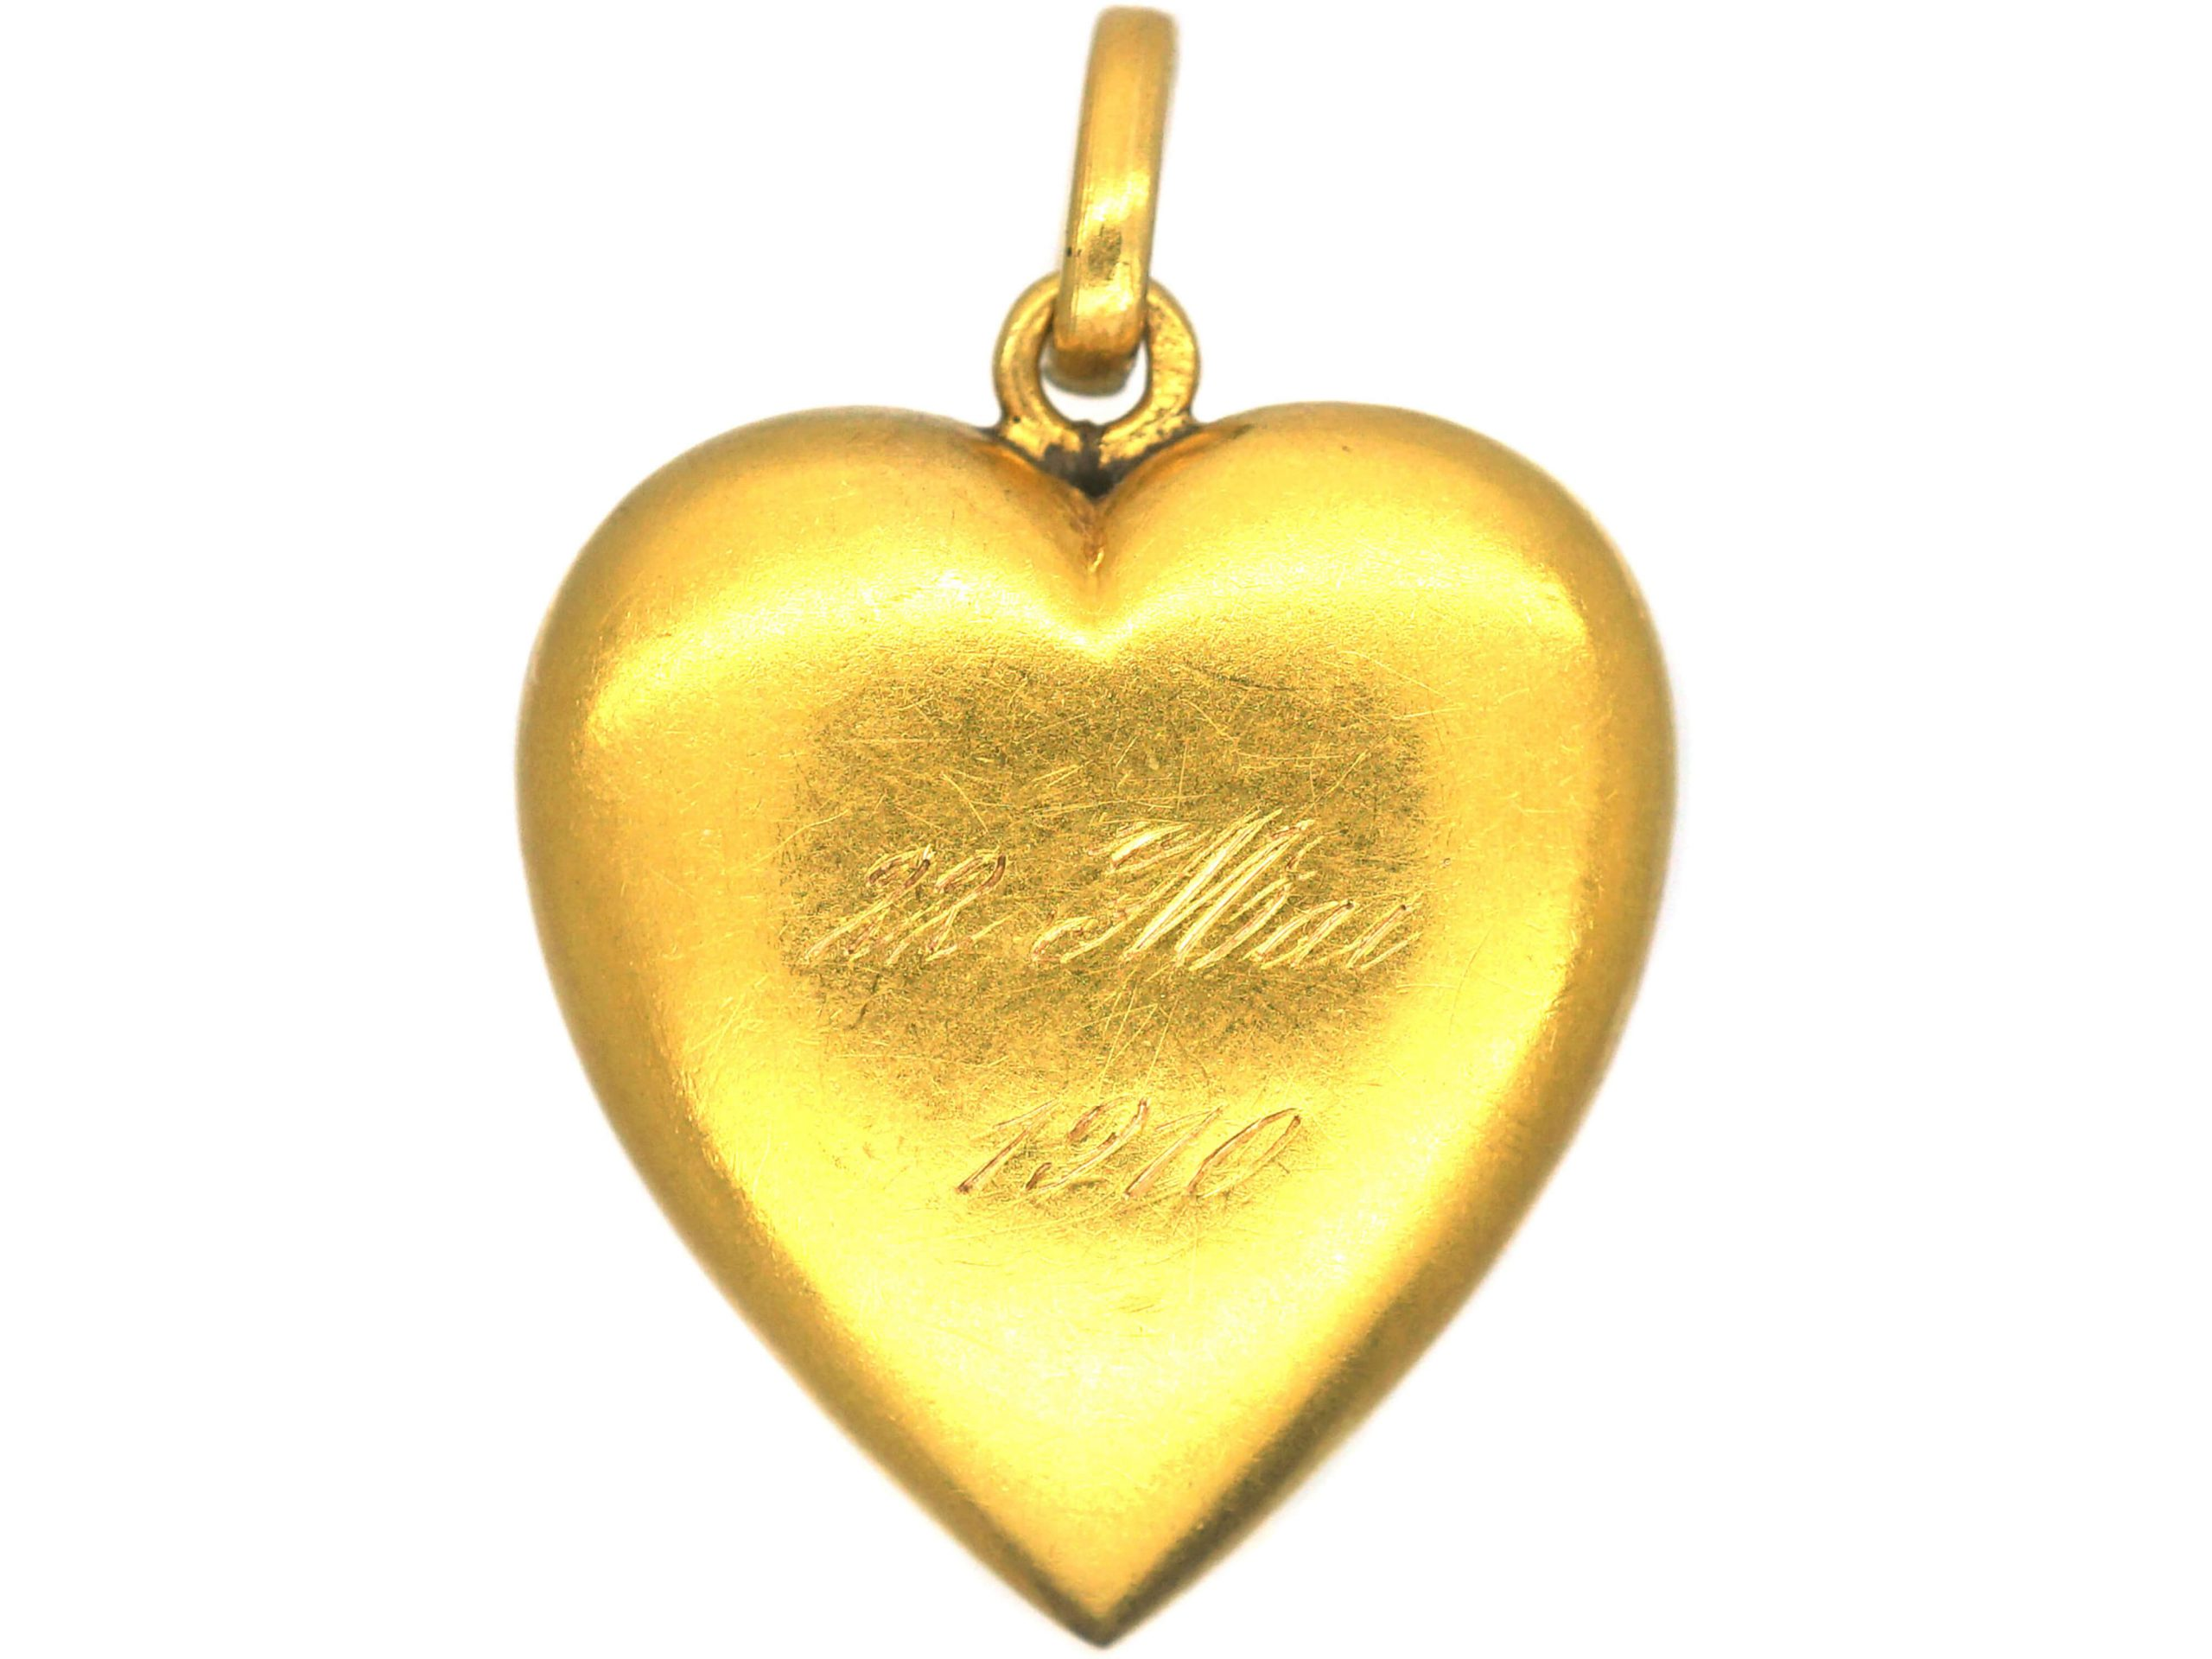 French Belle Epoque 18ct Gold Heart Pendant set with Natural Split Pearls